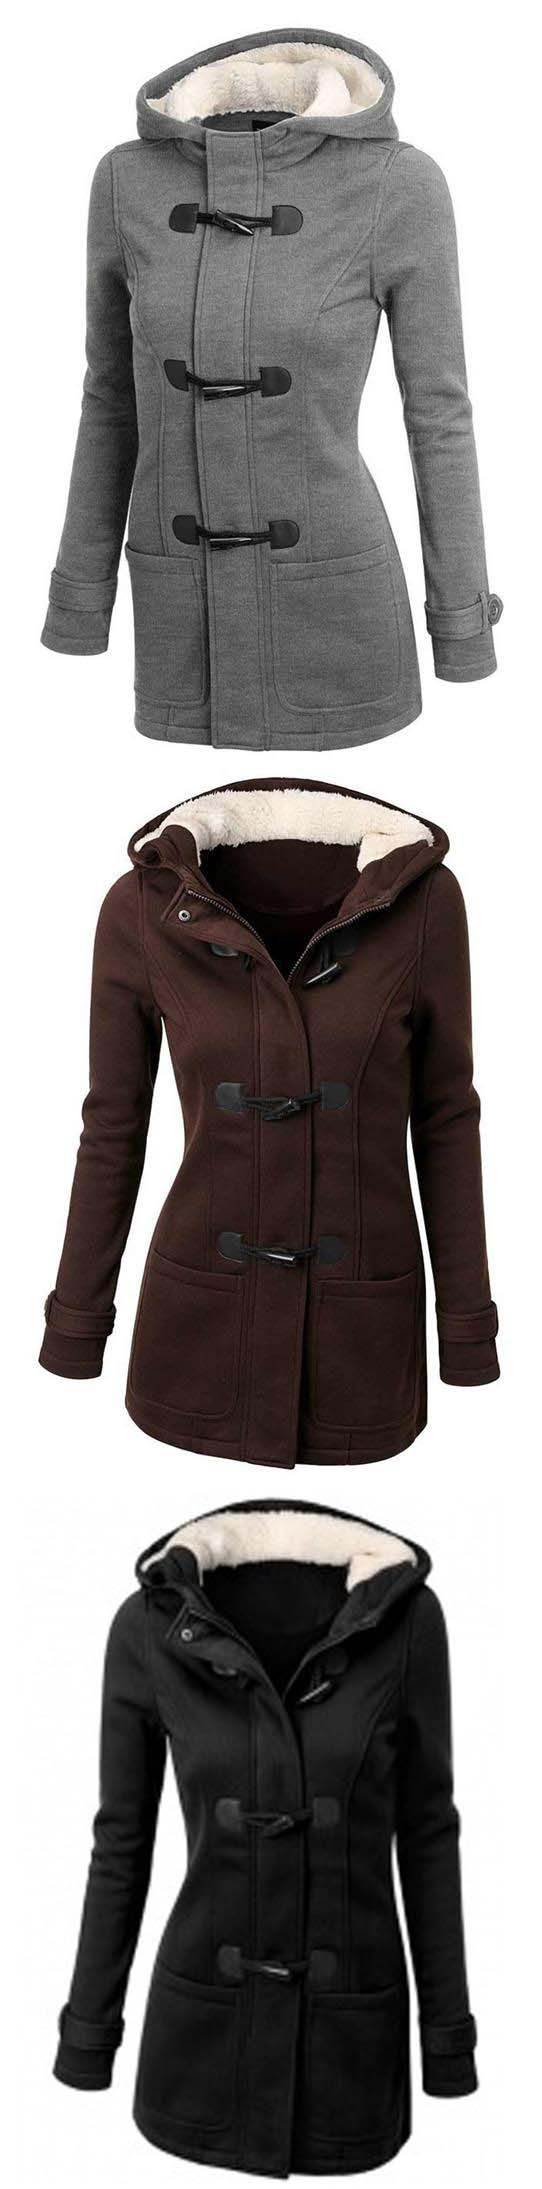 Basic style winter coat,can it get any better than this? The Traveller Coat features fleece hat,classic horn button and thick with lining. Get it at CUPSHE.COM